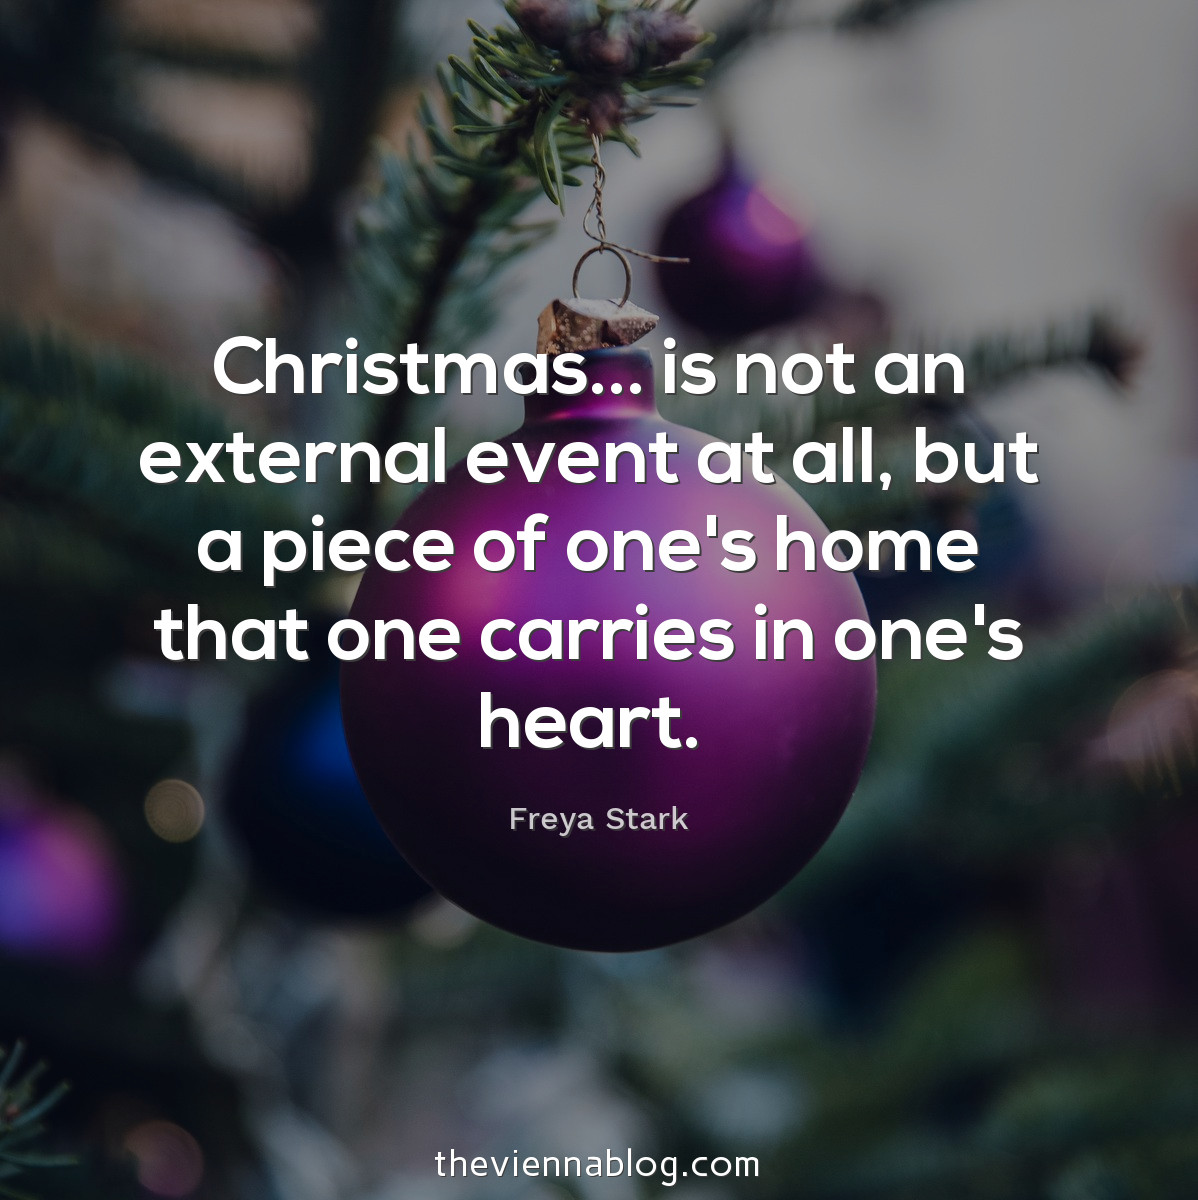 Quotes Christmas 50 Best Christmas Quotes Of All Time  The Vienna Blog  Lifestyle